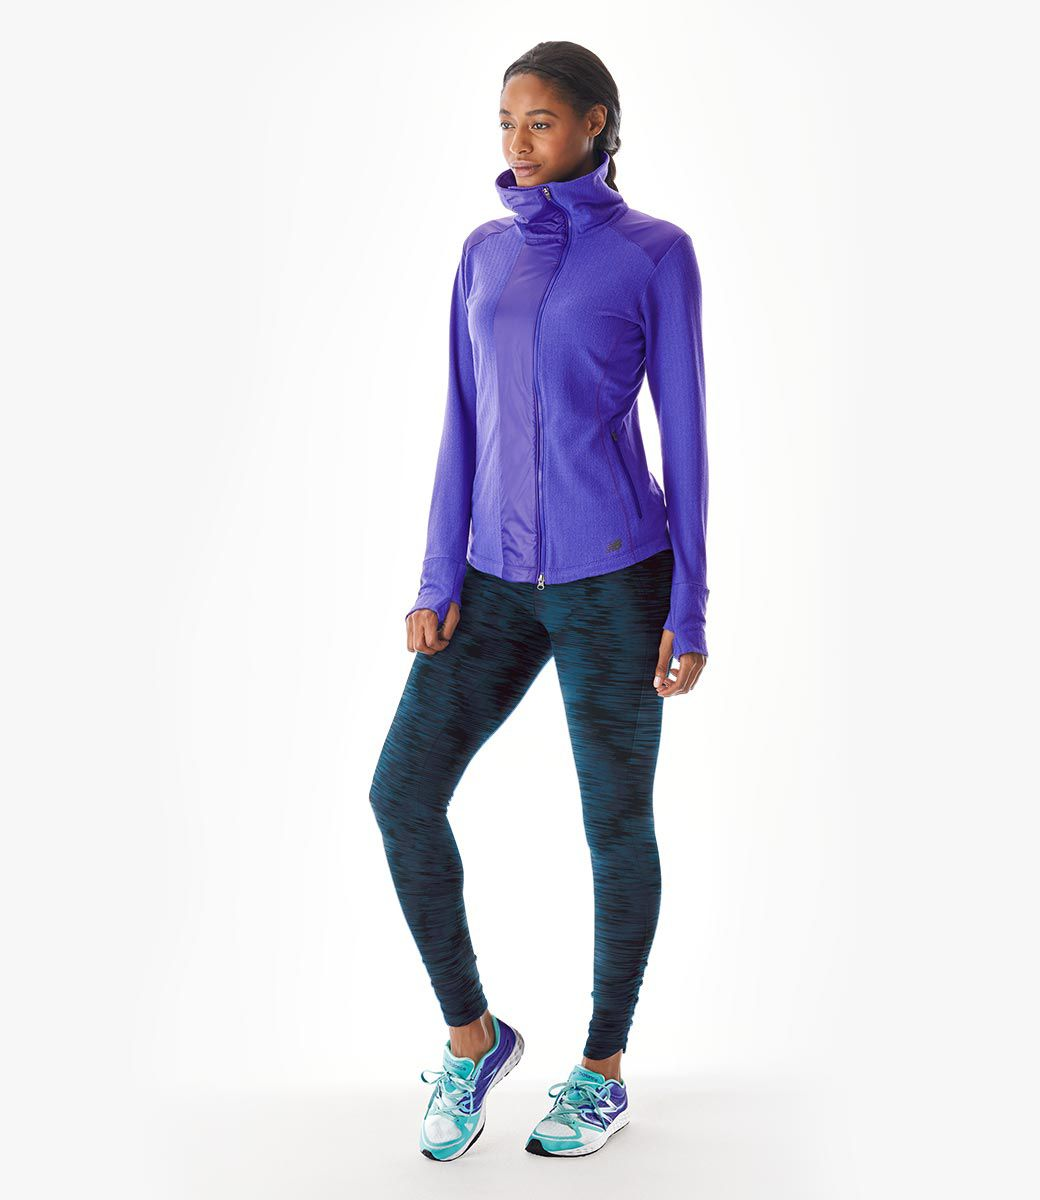 New Balance Womens September WX822v3 and NB Heat Look,